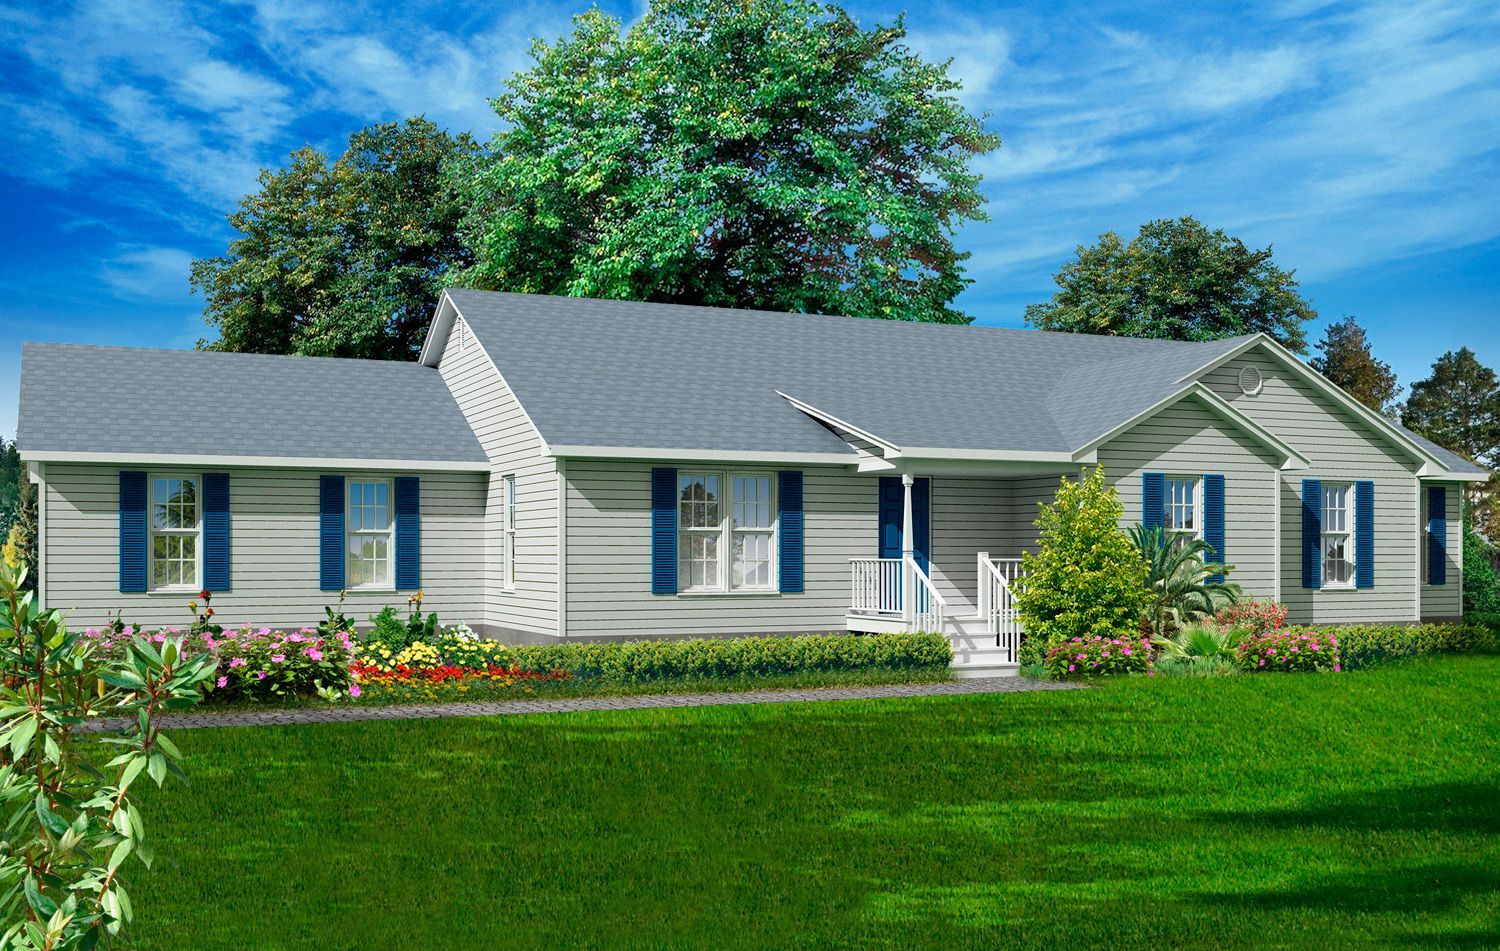 Single Family for Sale at Build On Your Lot - Jackson - Dawson A 896 Centre St. Ridgeland, Mississippi 39157 United States